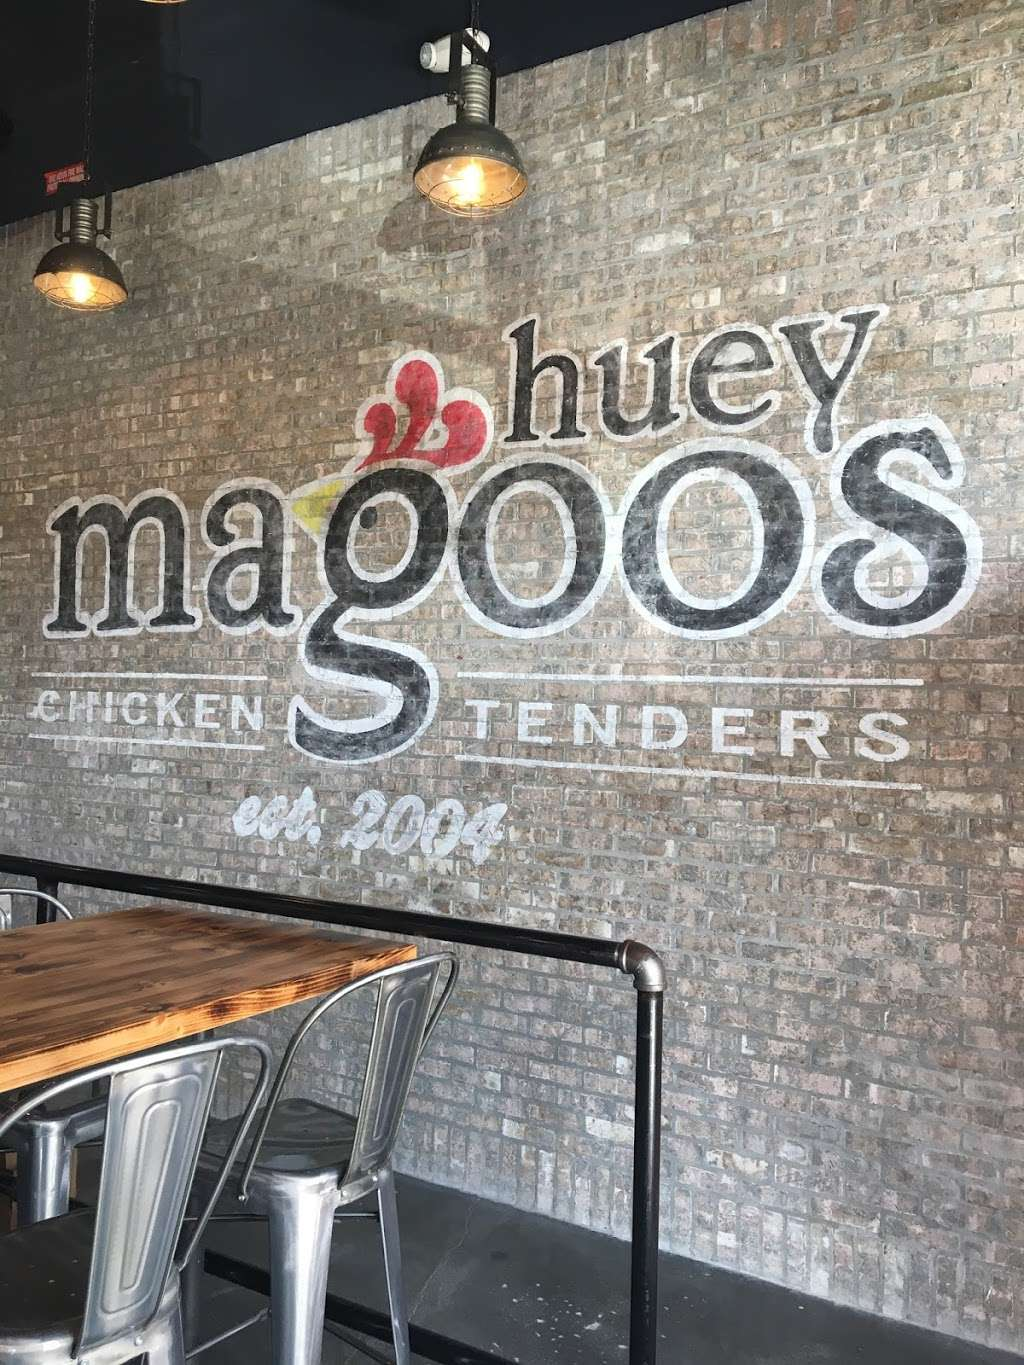 Huey Magoos Chicken Tenders - Gardens on Millenia - restaurant  | Photo 1 of 10 | Address: 4693 Gardens Park Boulevard Suite #111, Orlando, FL 32839, USA | Phone: (407) 969-0101